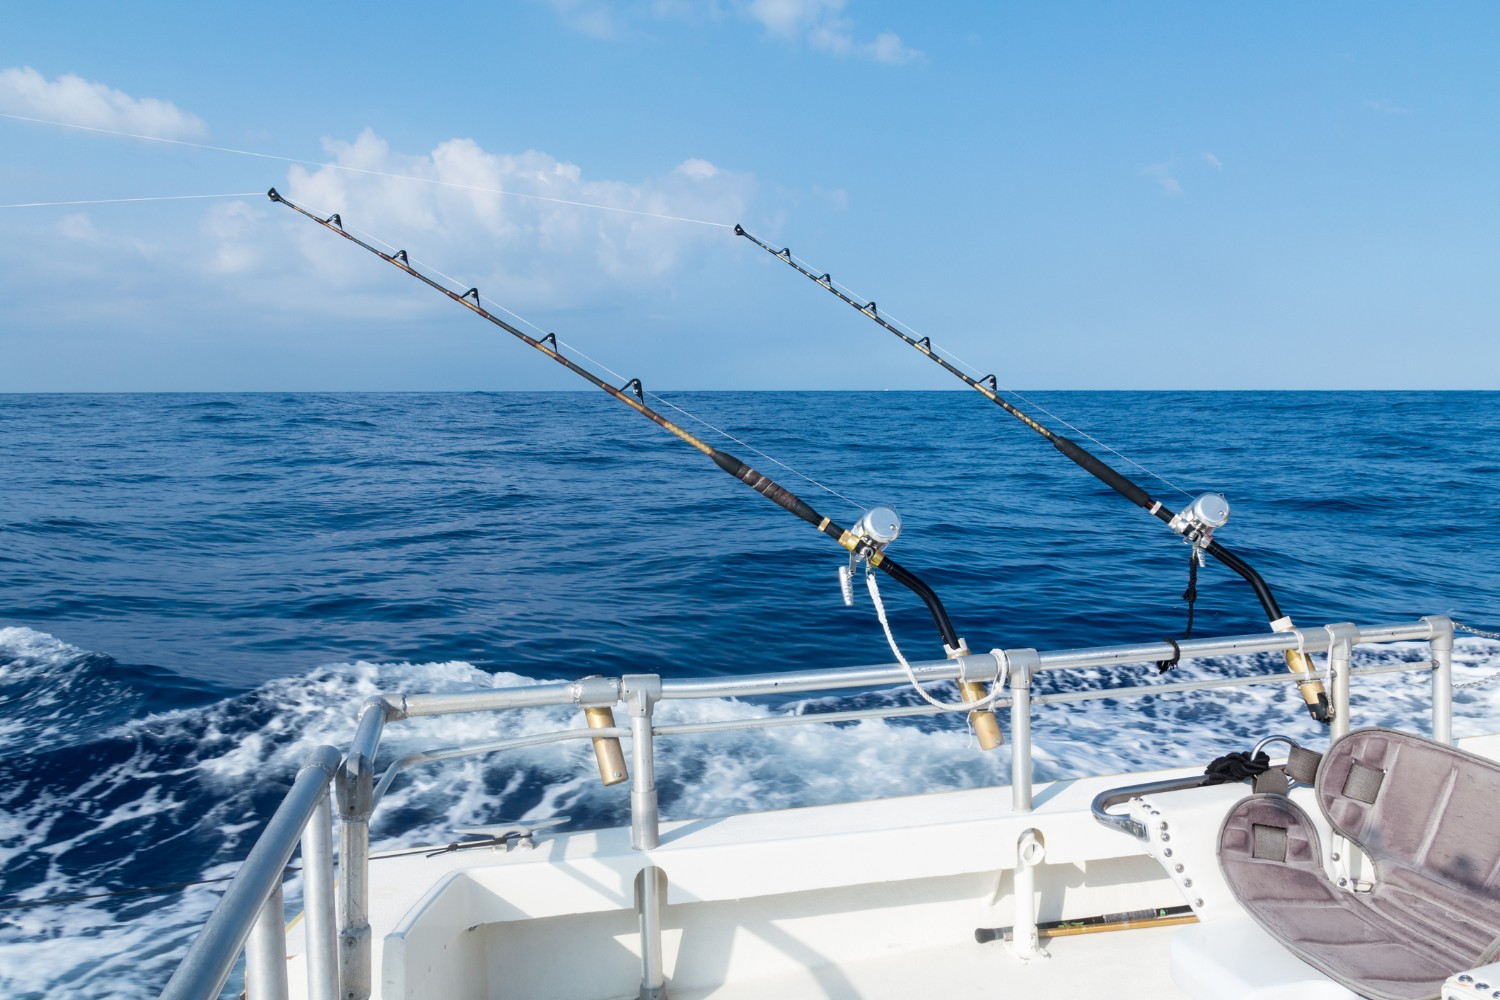 deep sea fishing rods set up on the boat